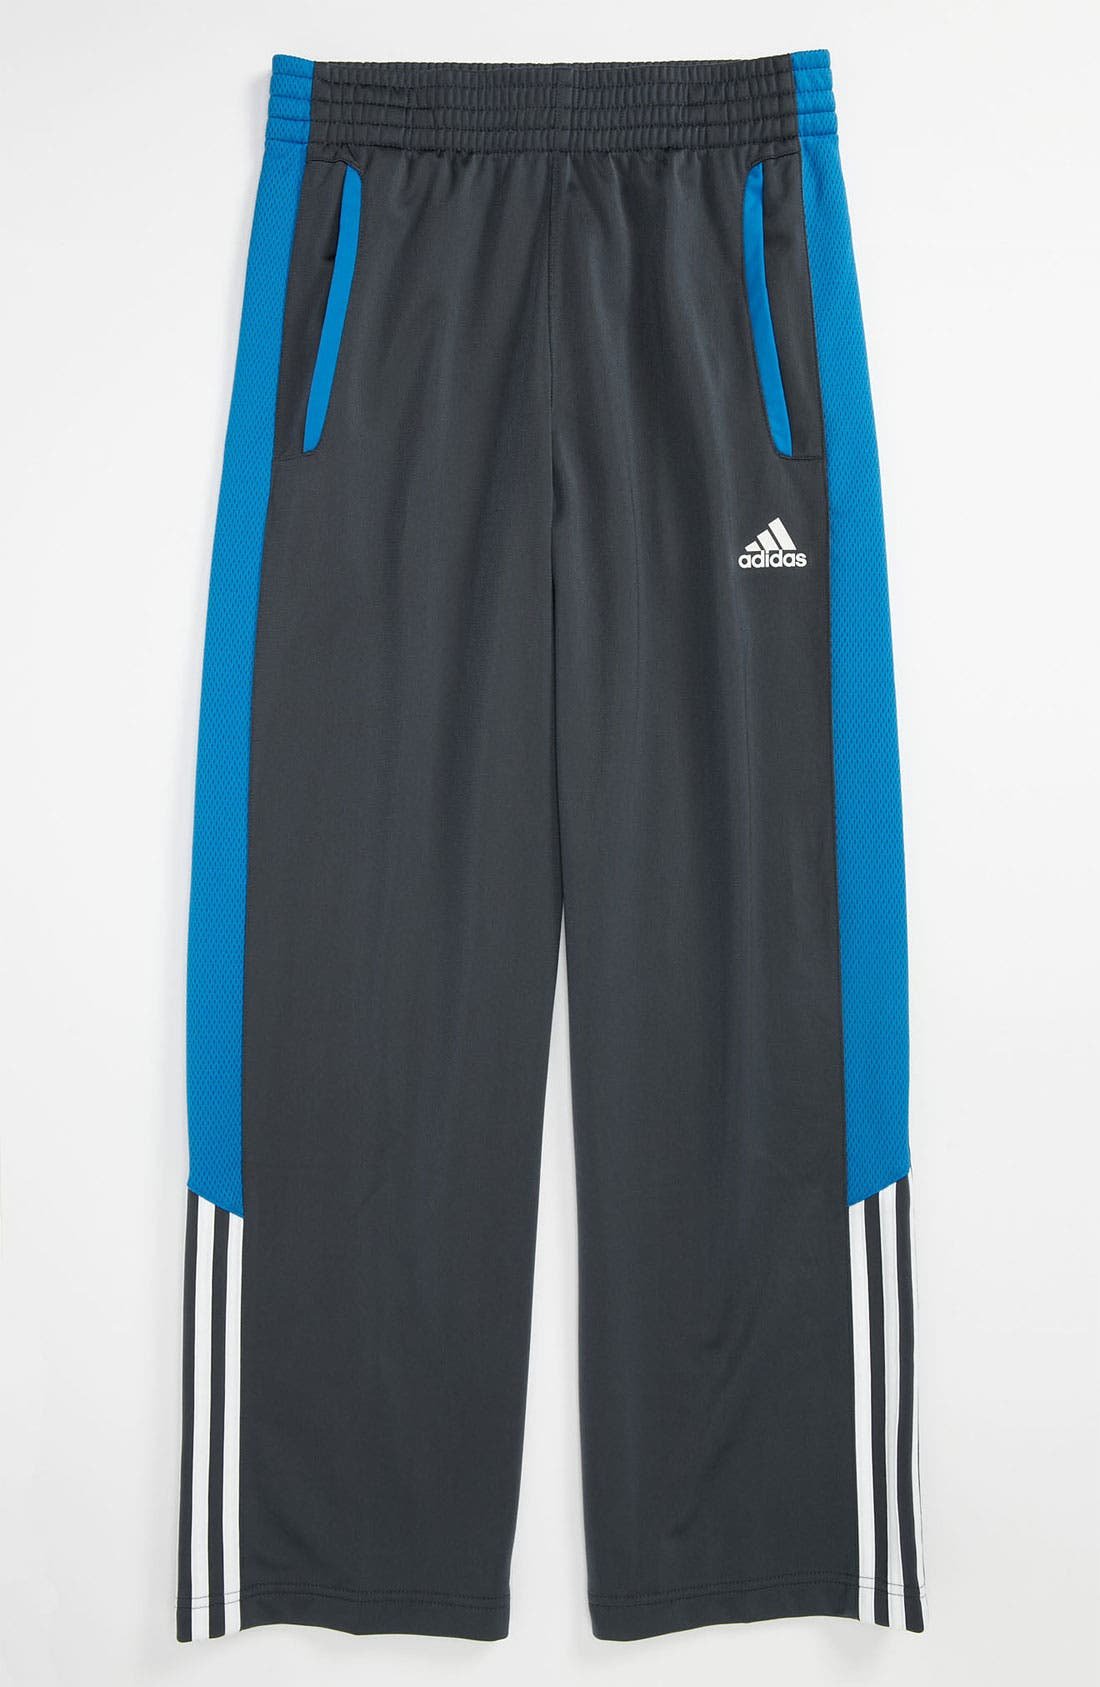 Alternate Image 1 Selected - adidas 'Pro Model' Pants (Big Boys)